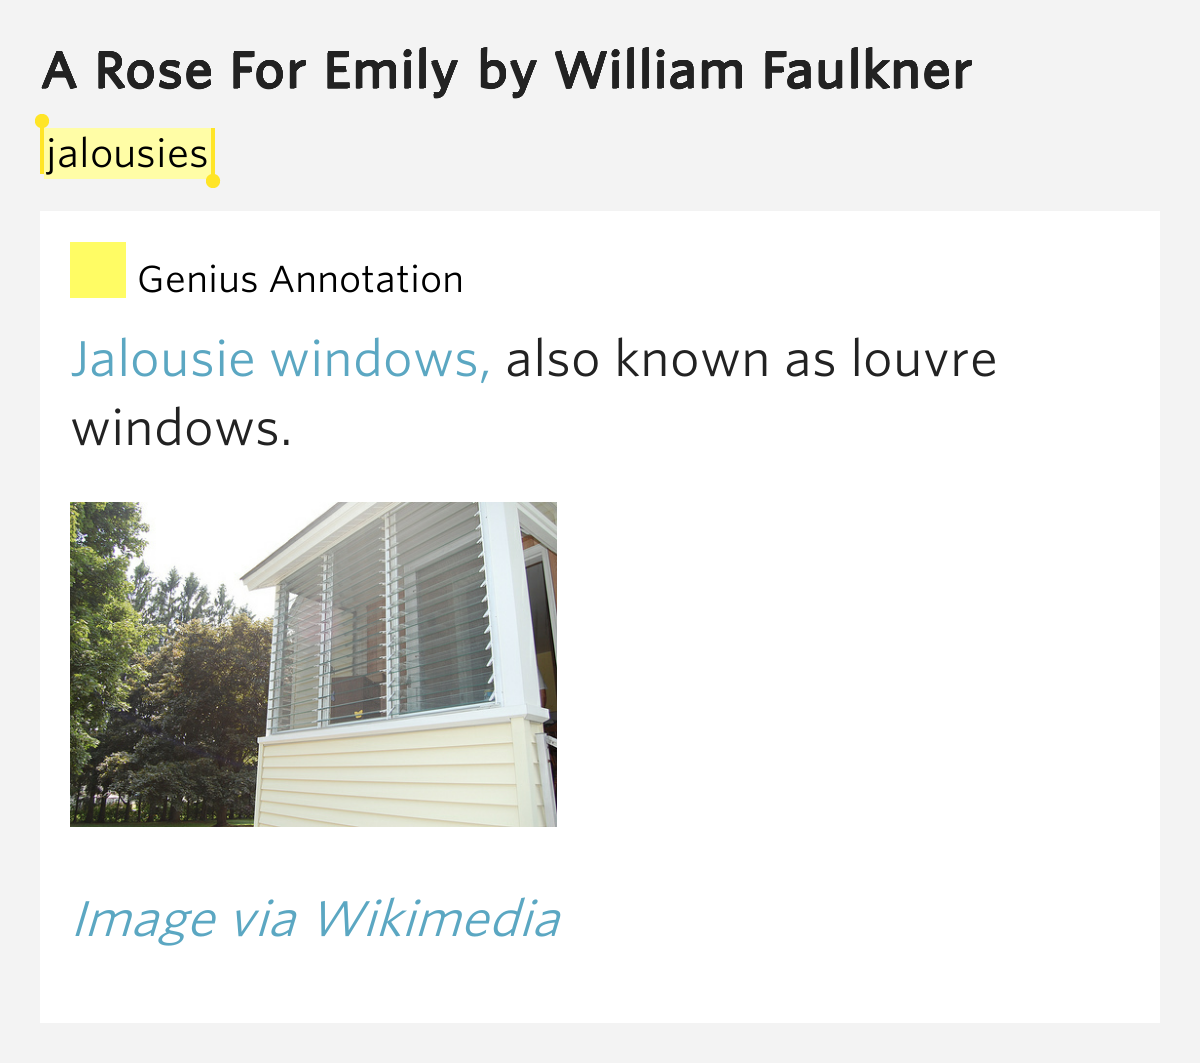 a rose for emily sweat comparison A rose for emily is a short story of isolation, loss, gossip, the conflict of old and new, and evens the possibility of murder the yellow wallpaper is partly autobiographical and illustrates the fight for selfhood by a woman in an oppressed environment.